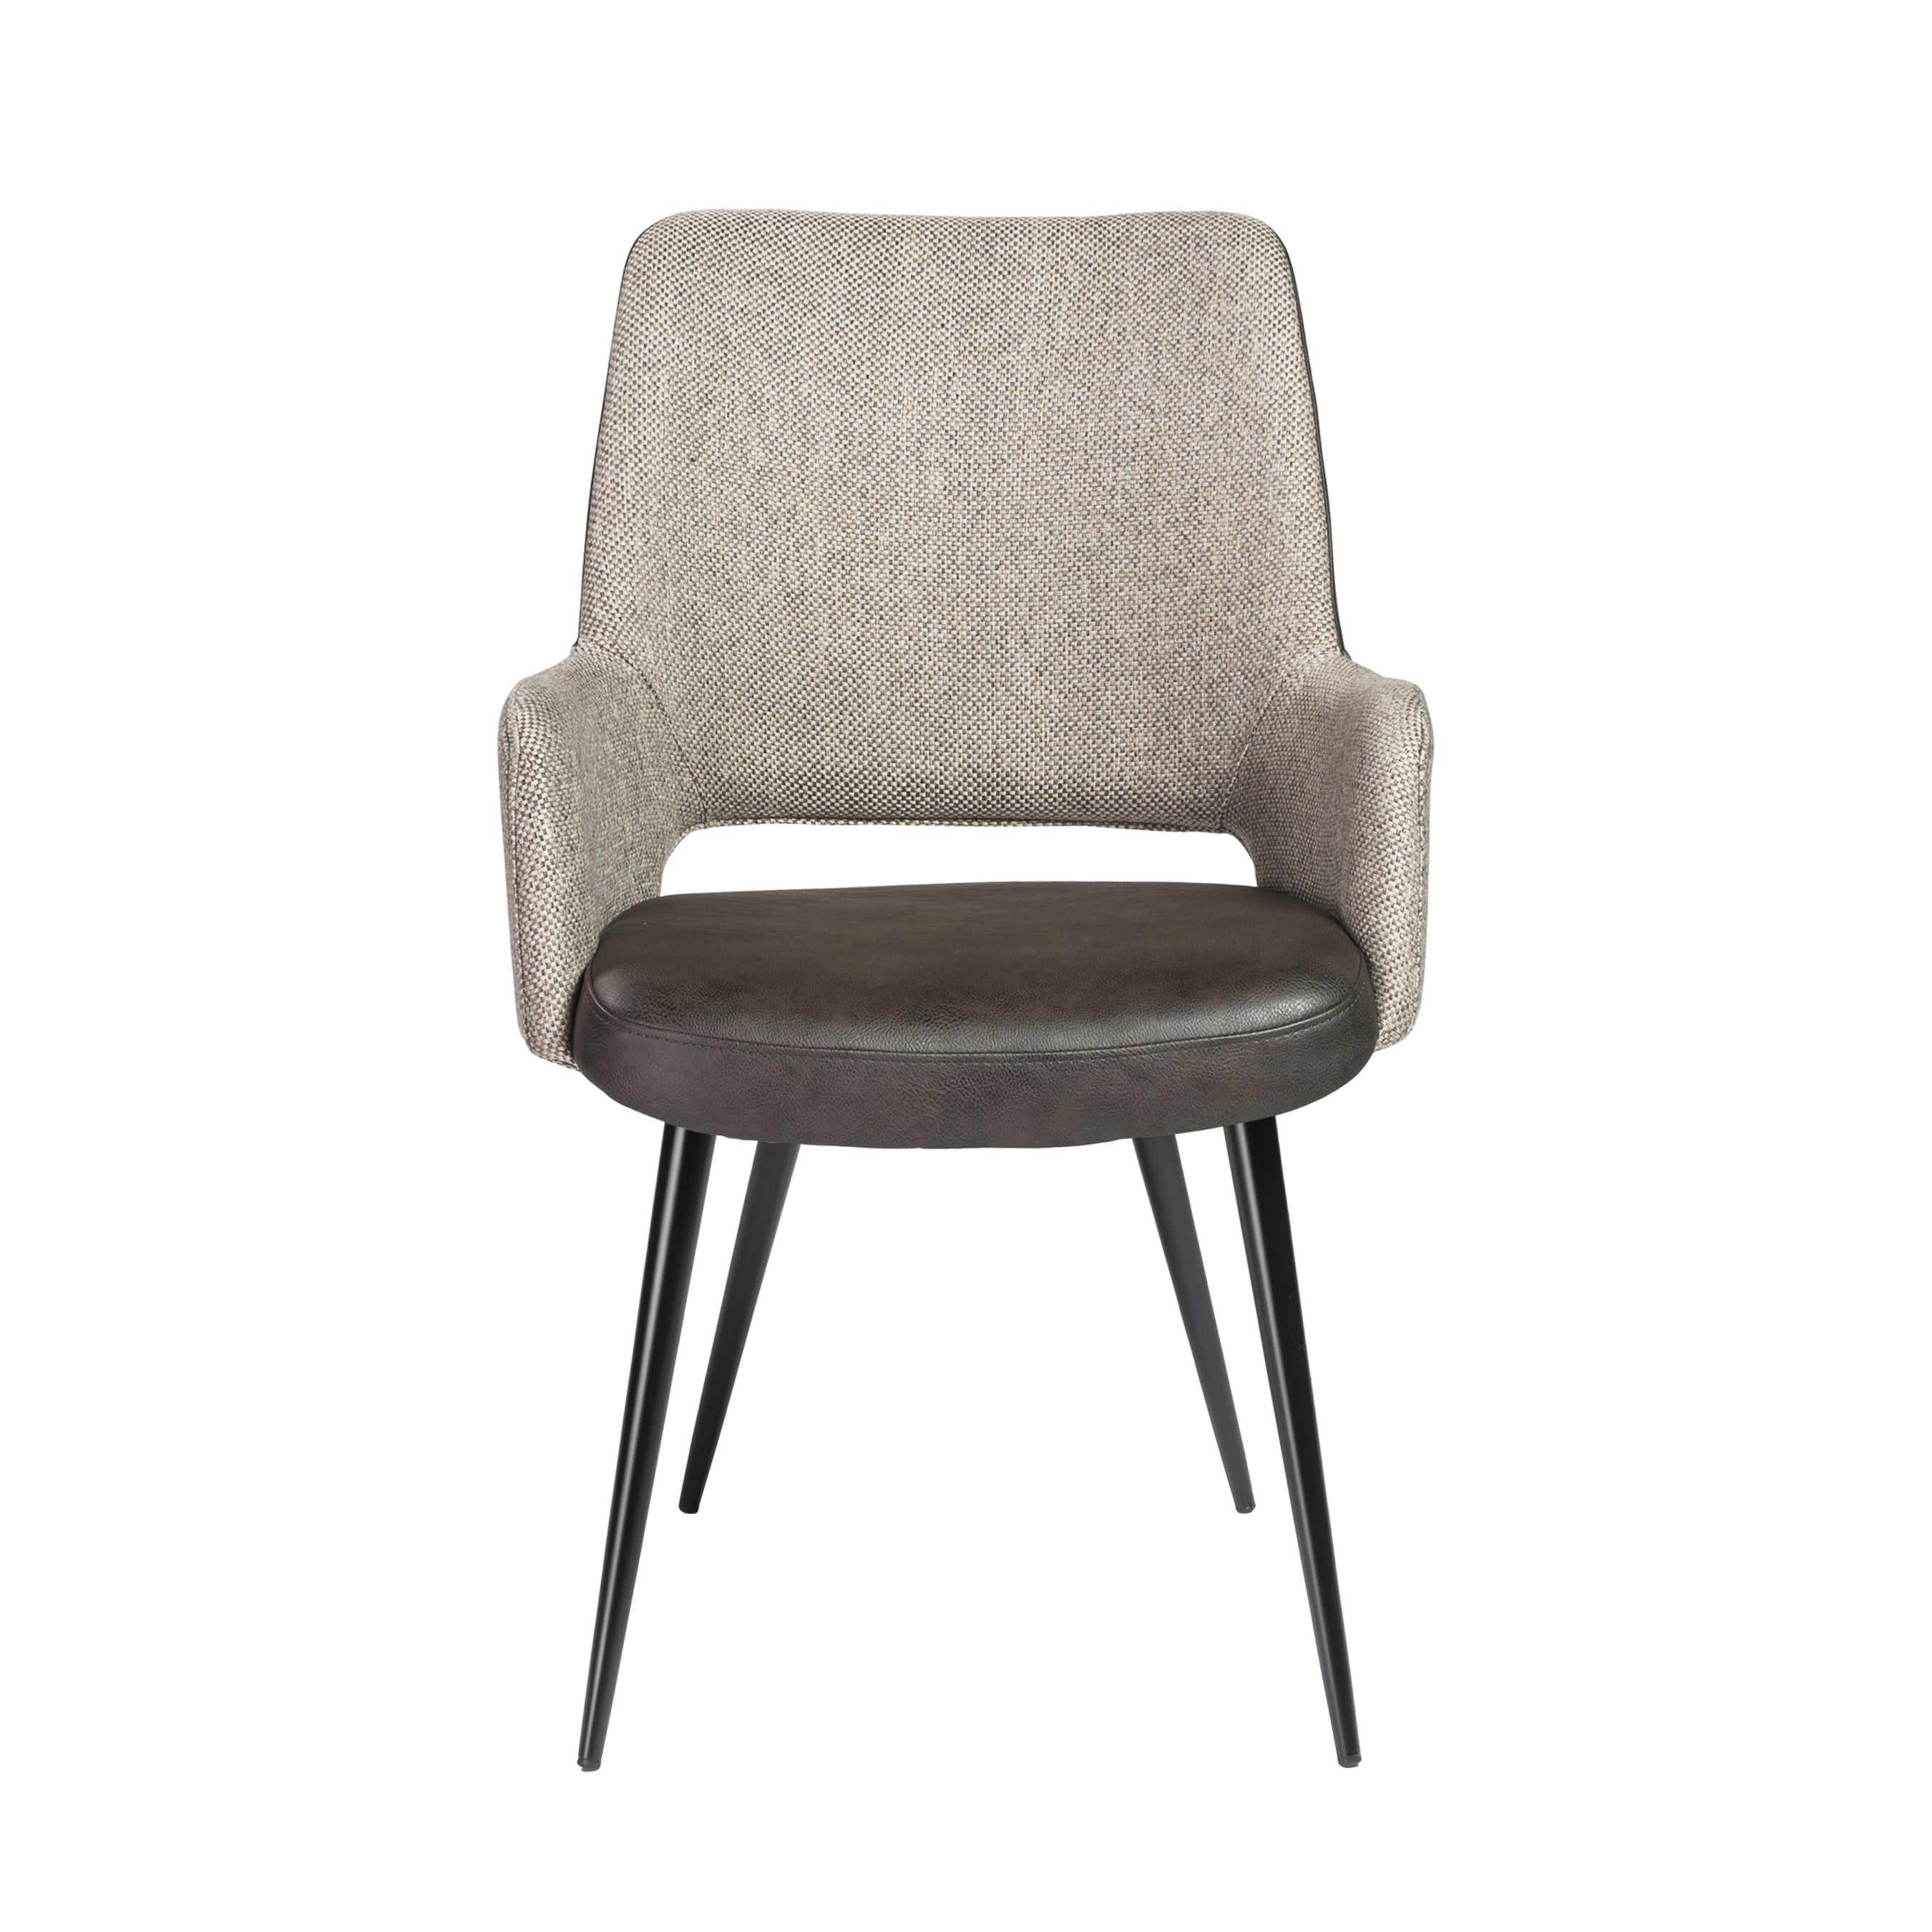 Desi arm chair euro style grey upholstered dining